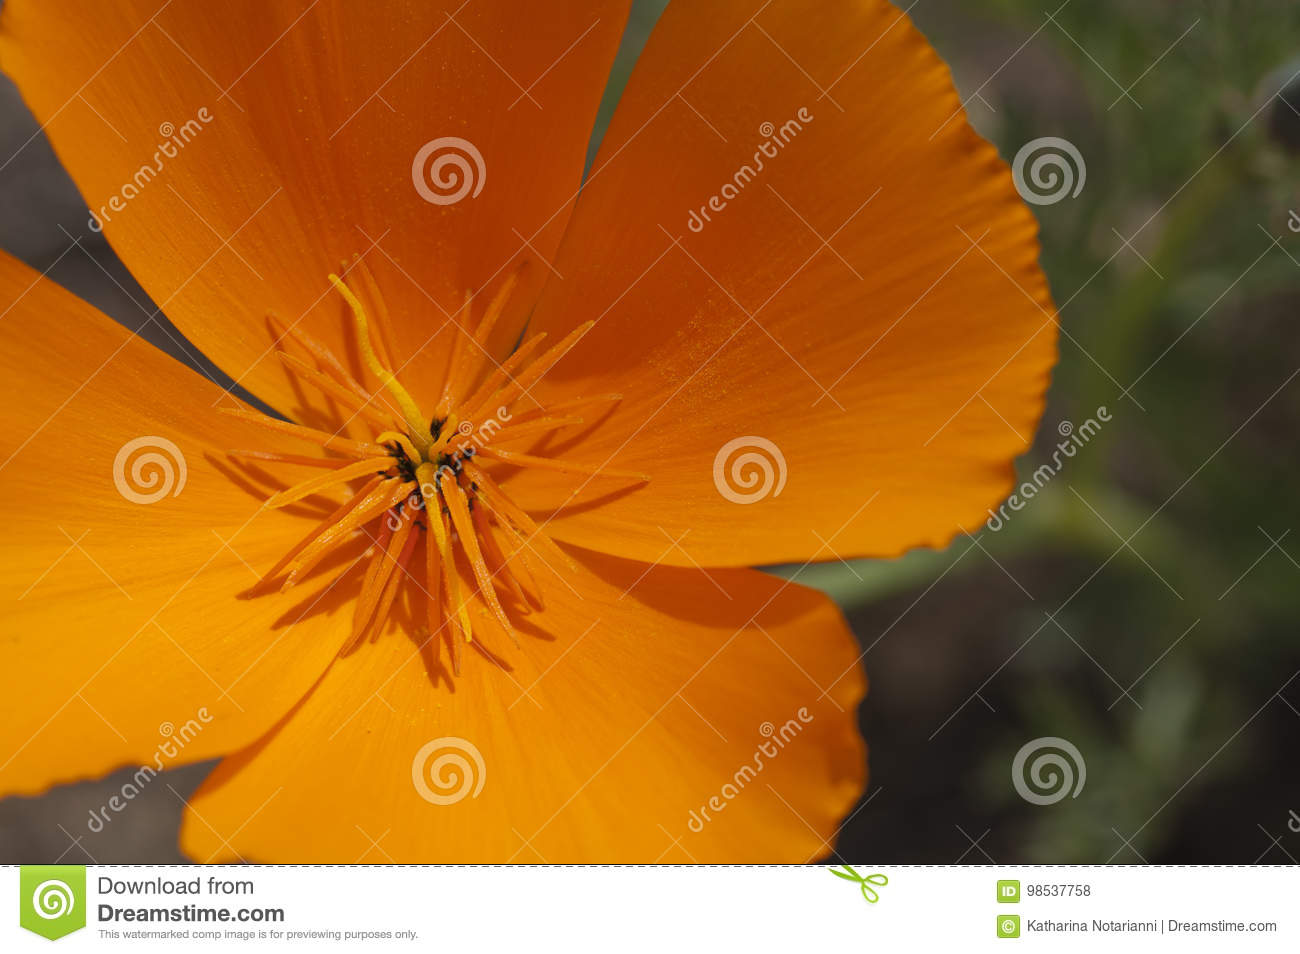 California Poppy Close-up